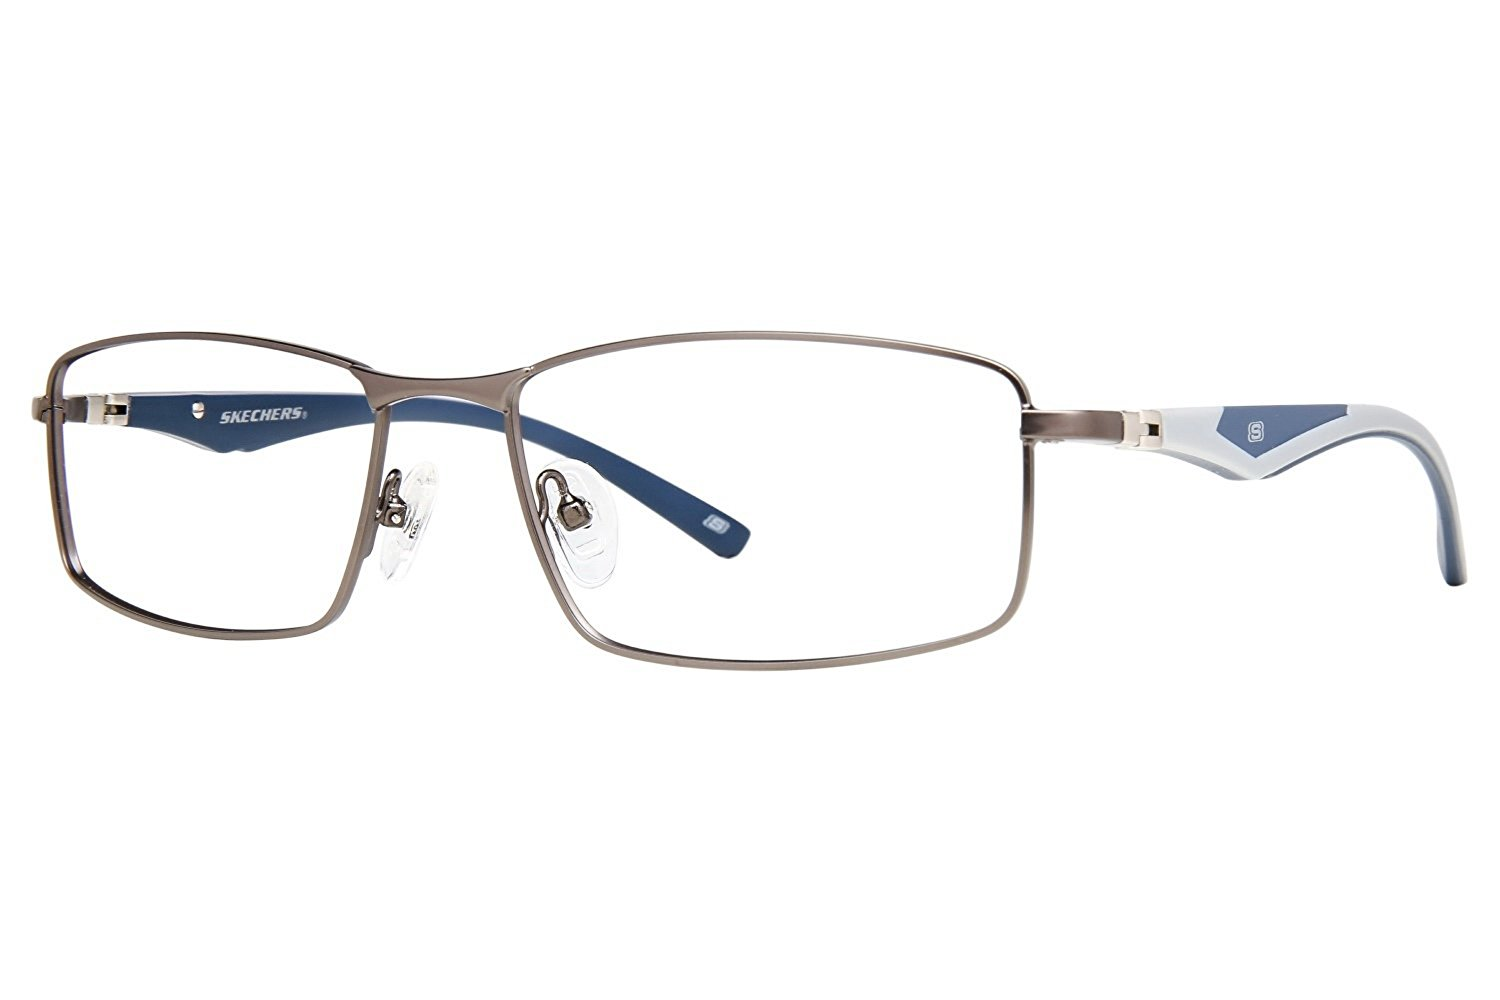 Buy Skechers SK 3156 Mens Eyeglass Frames in Cheap Price on Alibaba.com